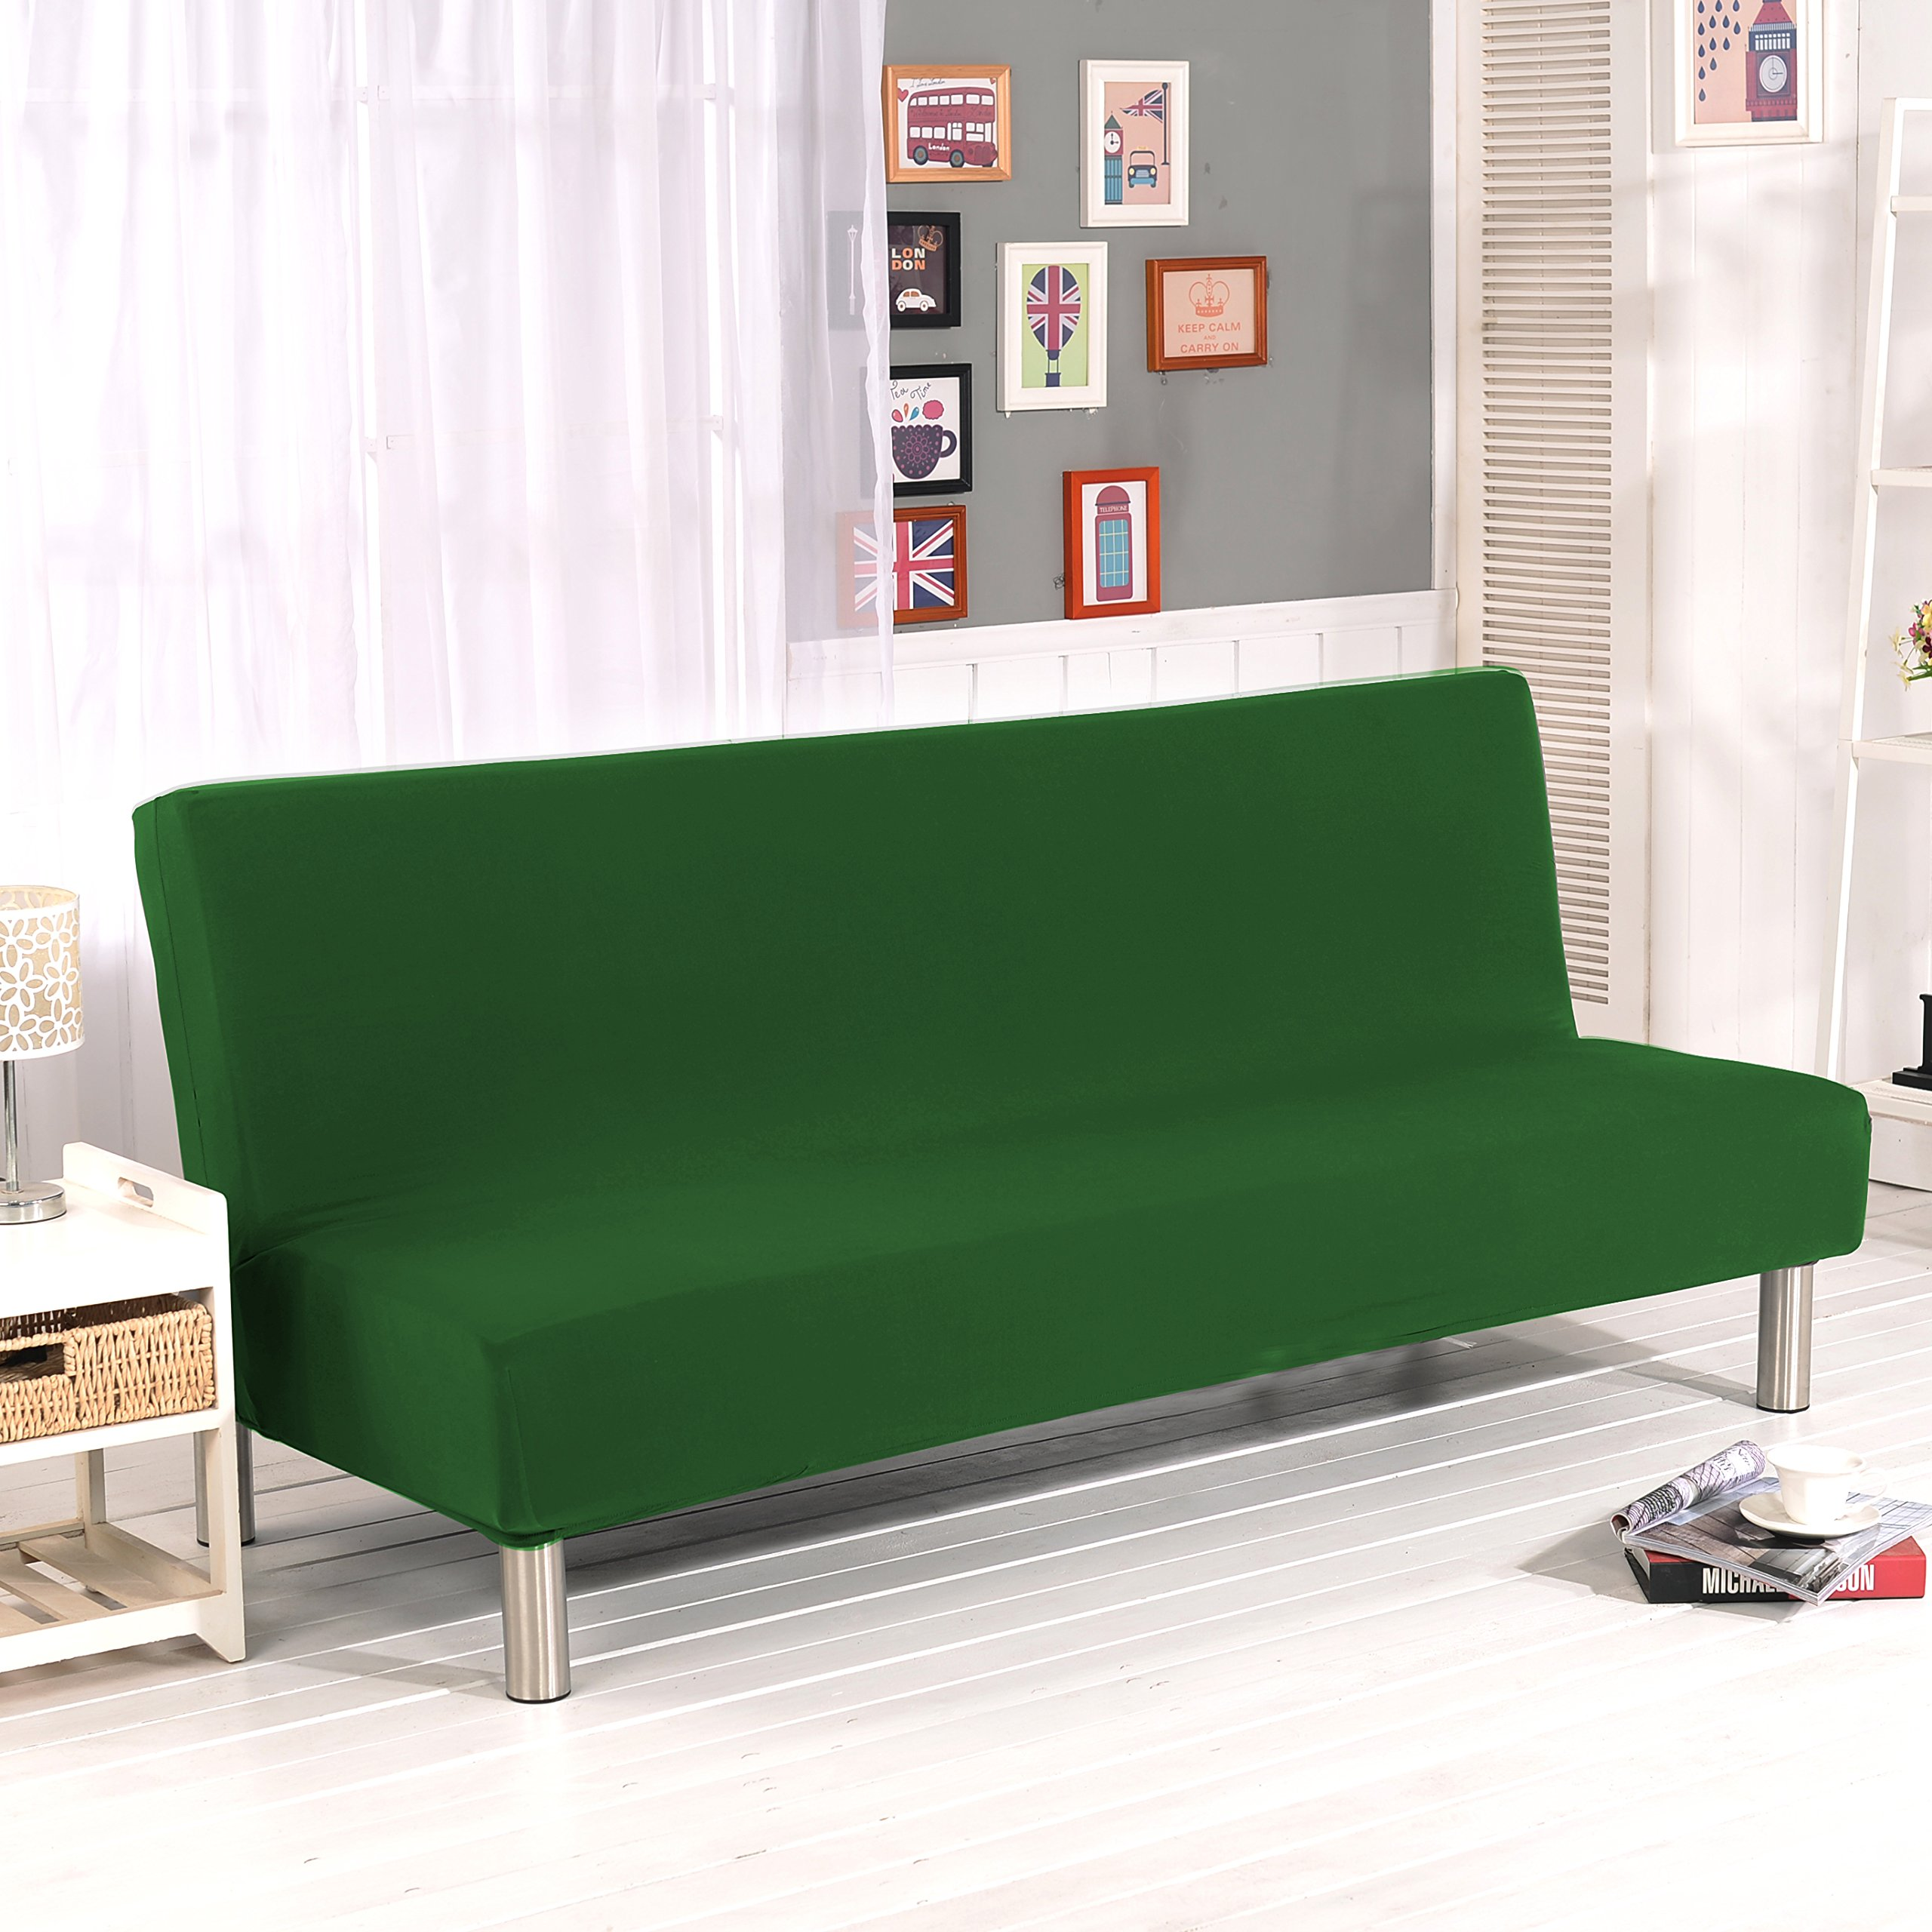 Get Quotations Watta Solid Color Futon Cover Slipcover Couch Polyester Spandex Stretch Bed Replacement